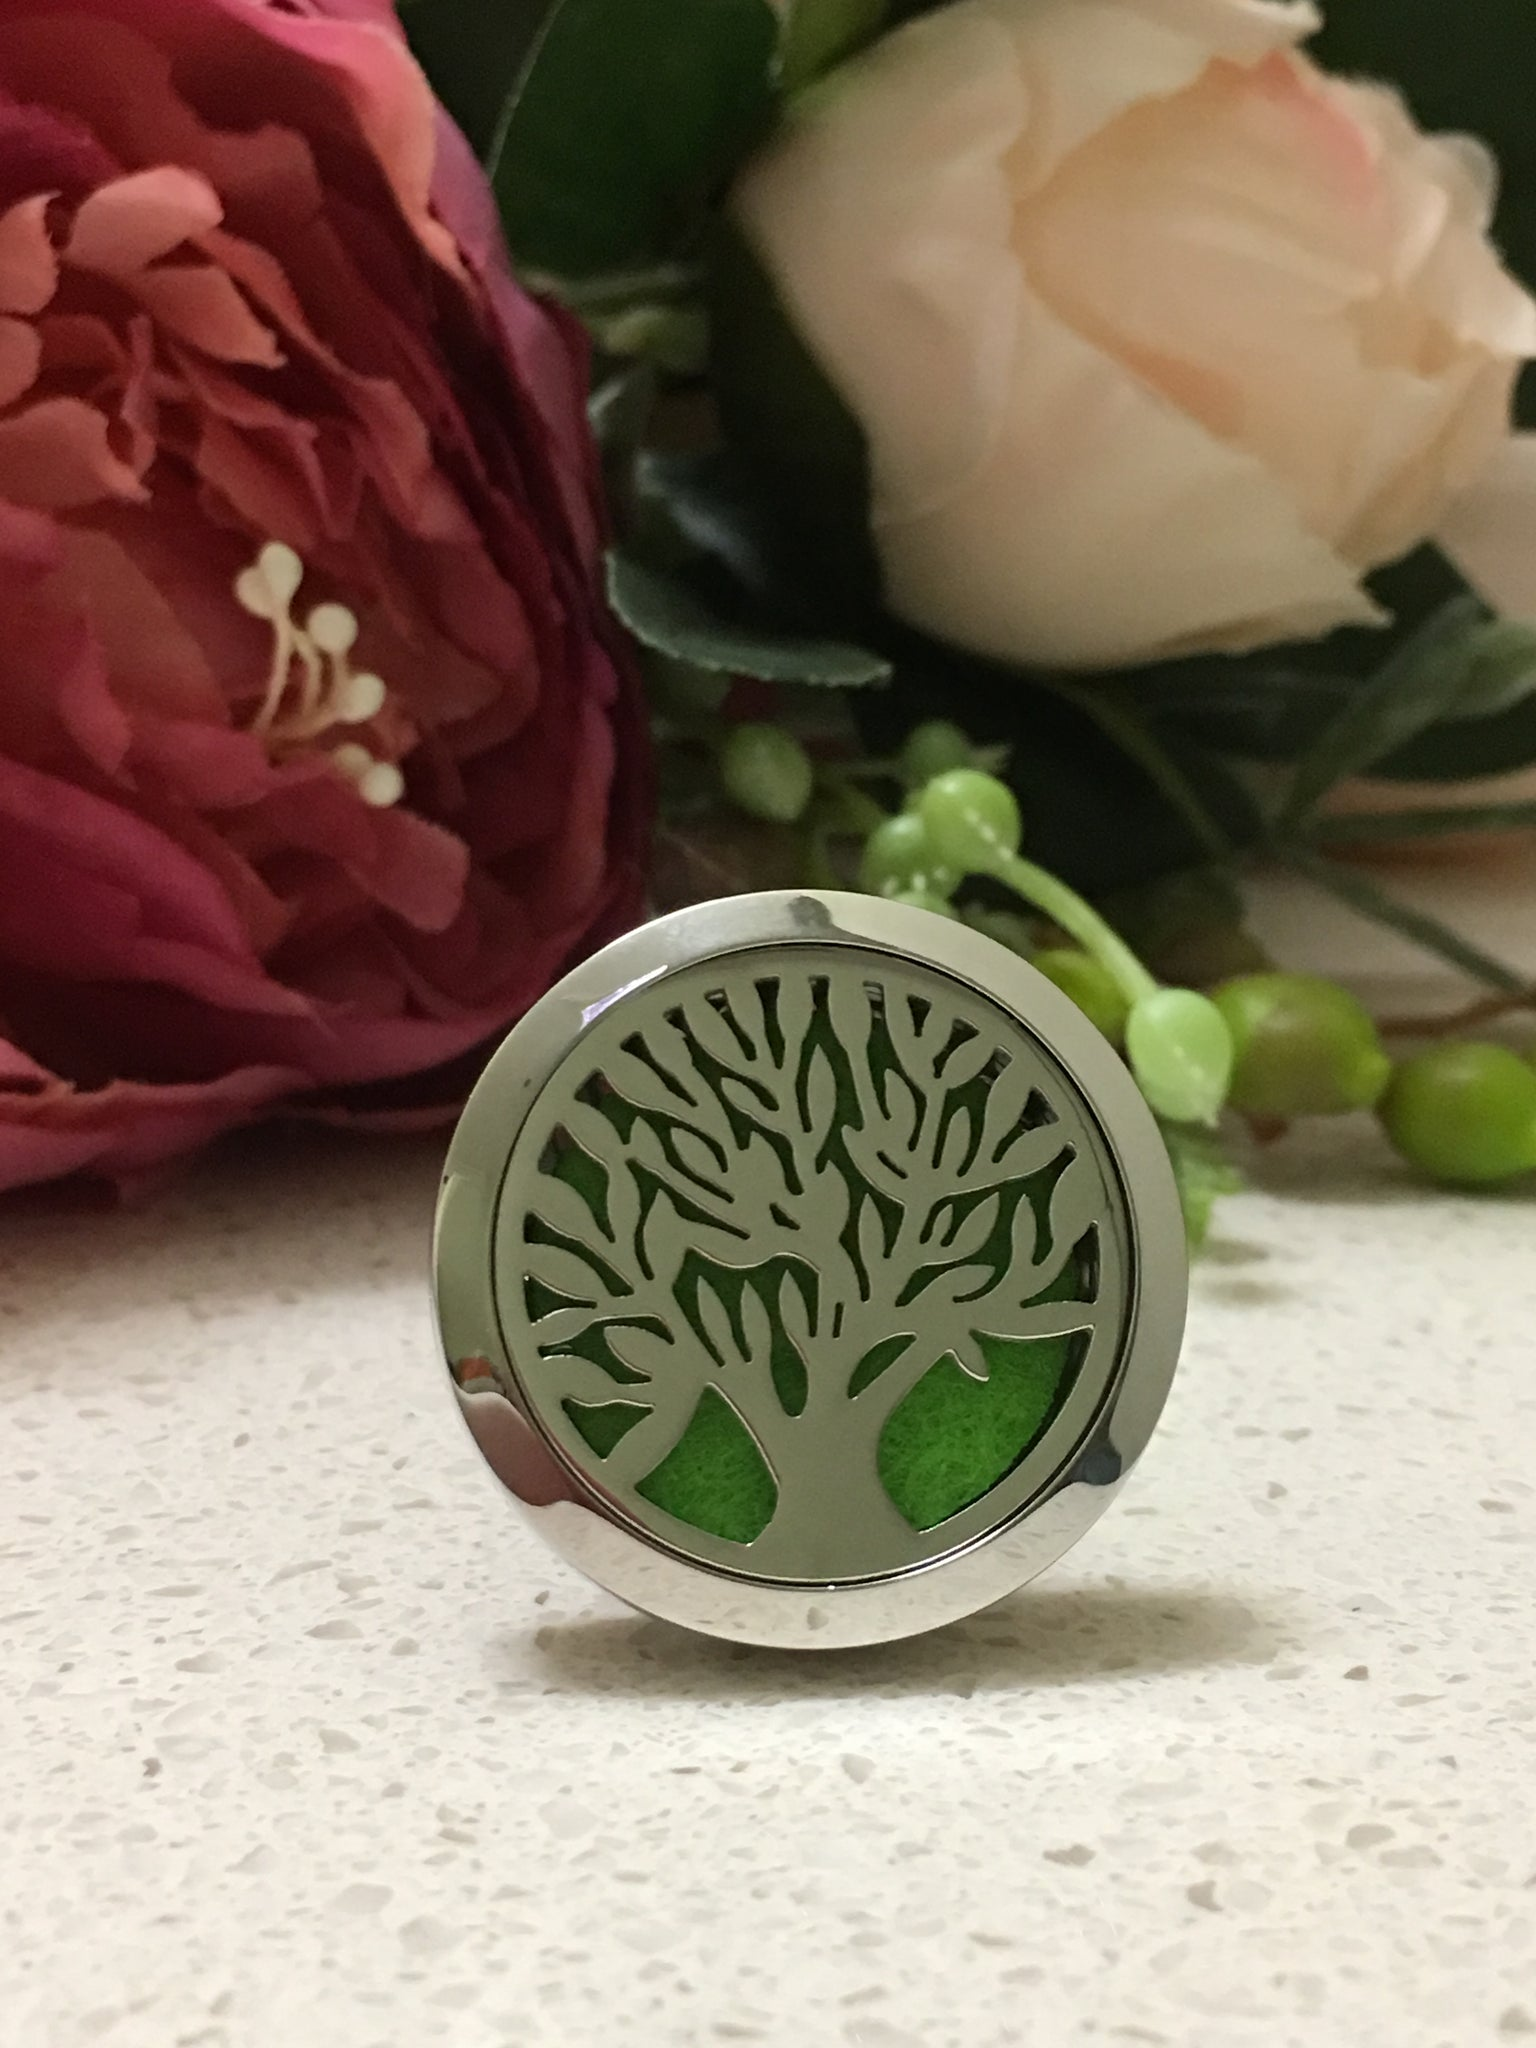 30mm Stainless Steel Car Diffuser - Tree of Life